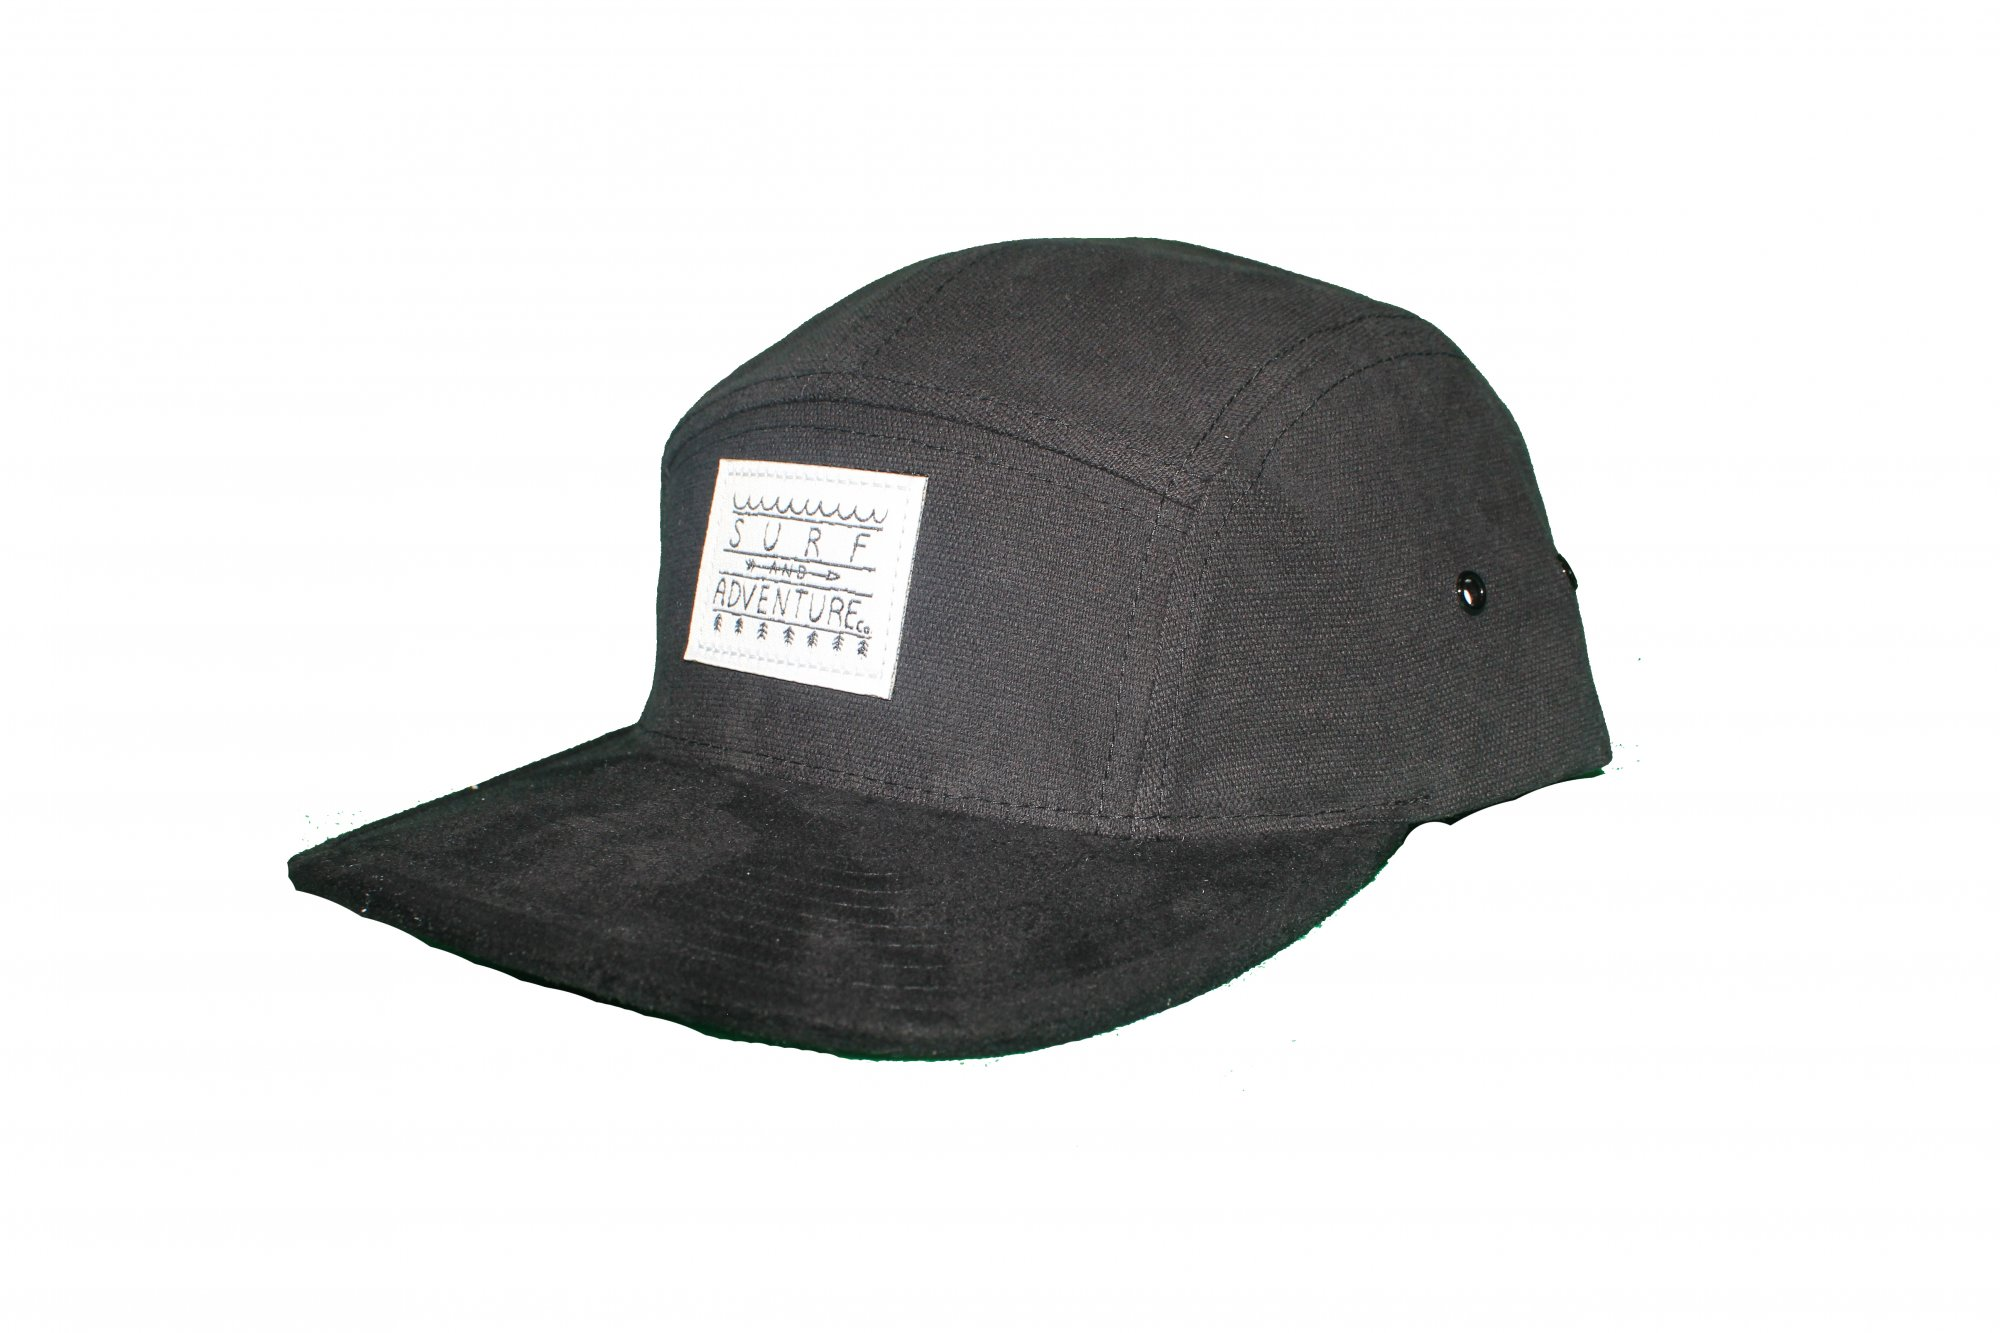 S&A Scurvy Hat 5-Panel